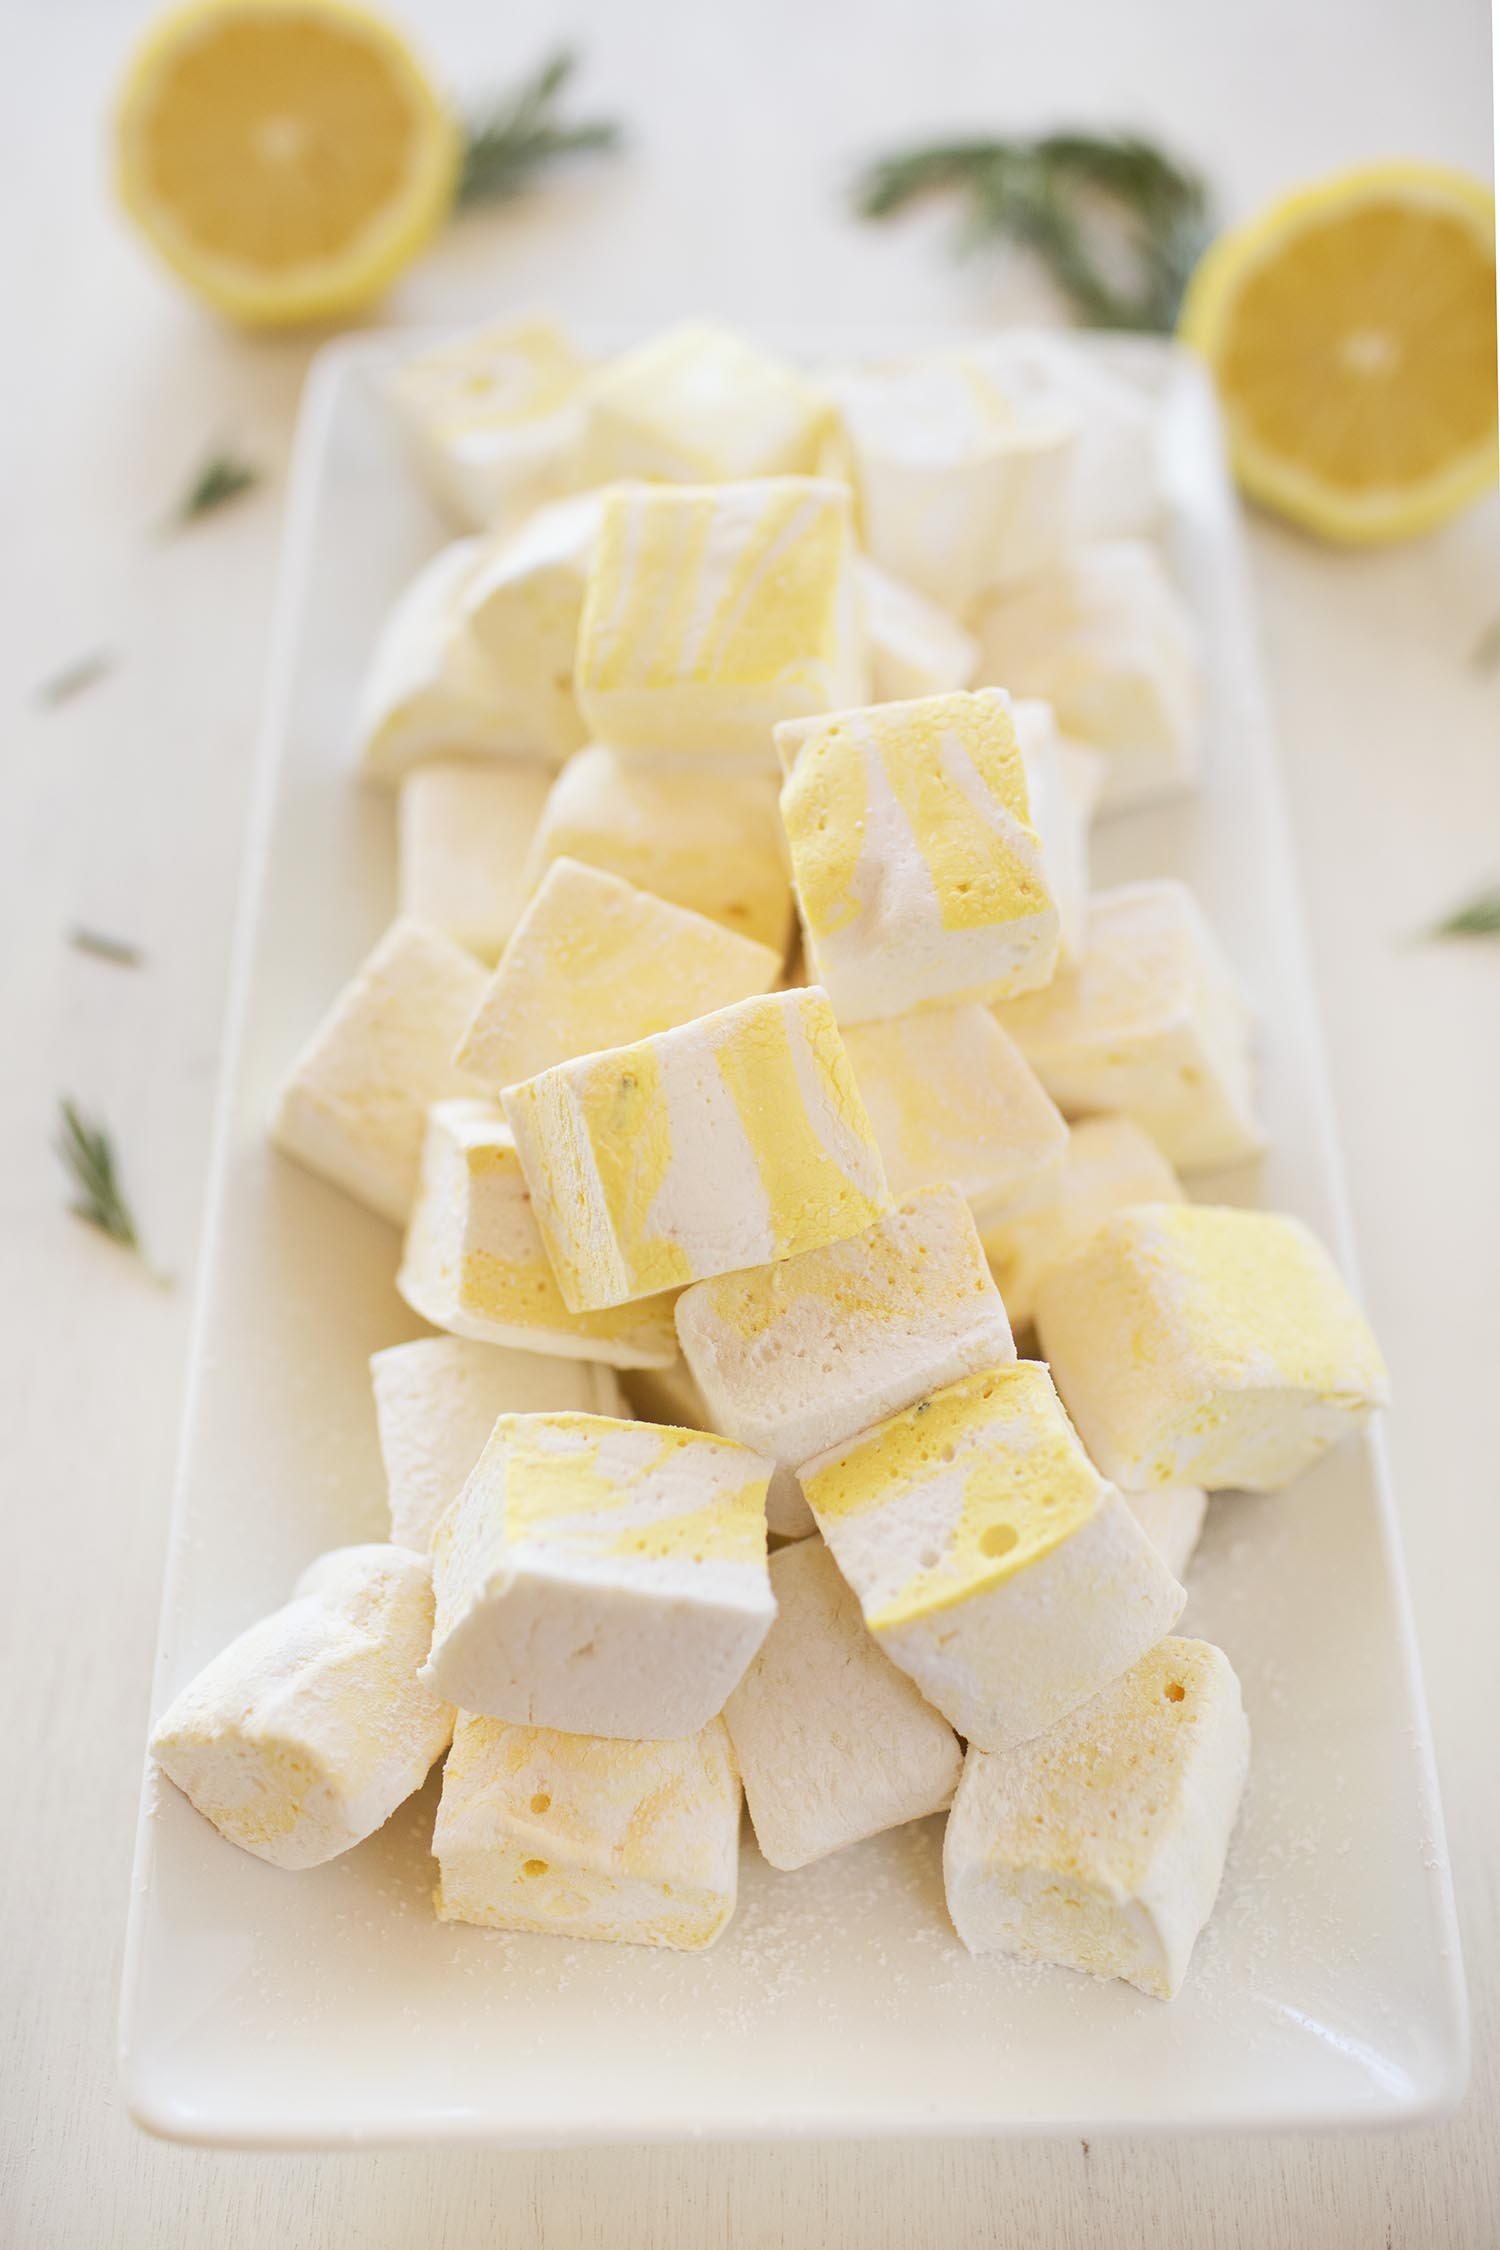 Lemon and Rosemary Marhmallows (via abeautifulmess.com)